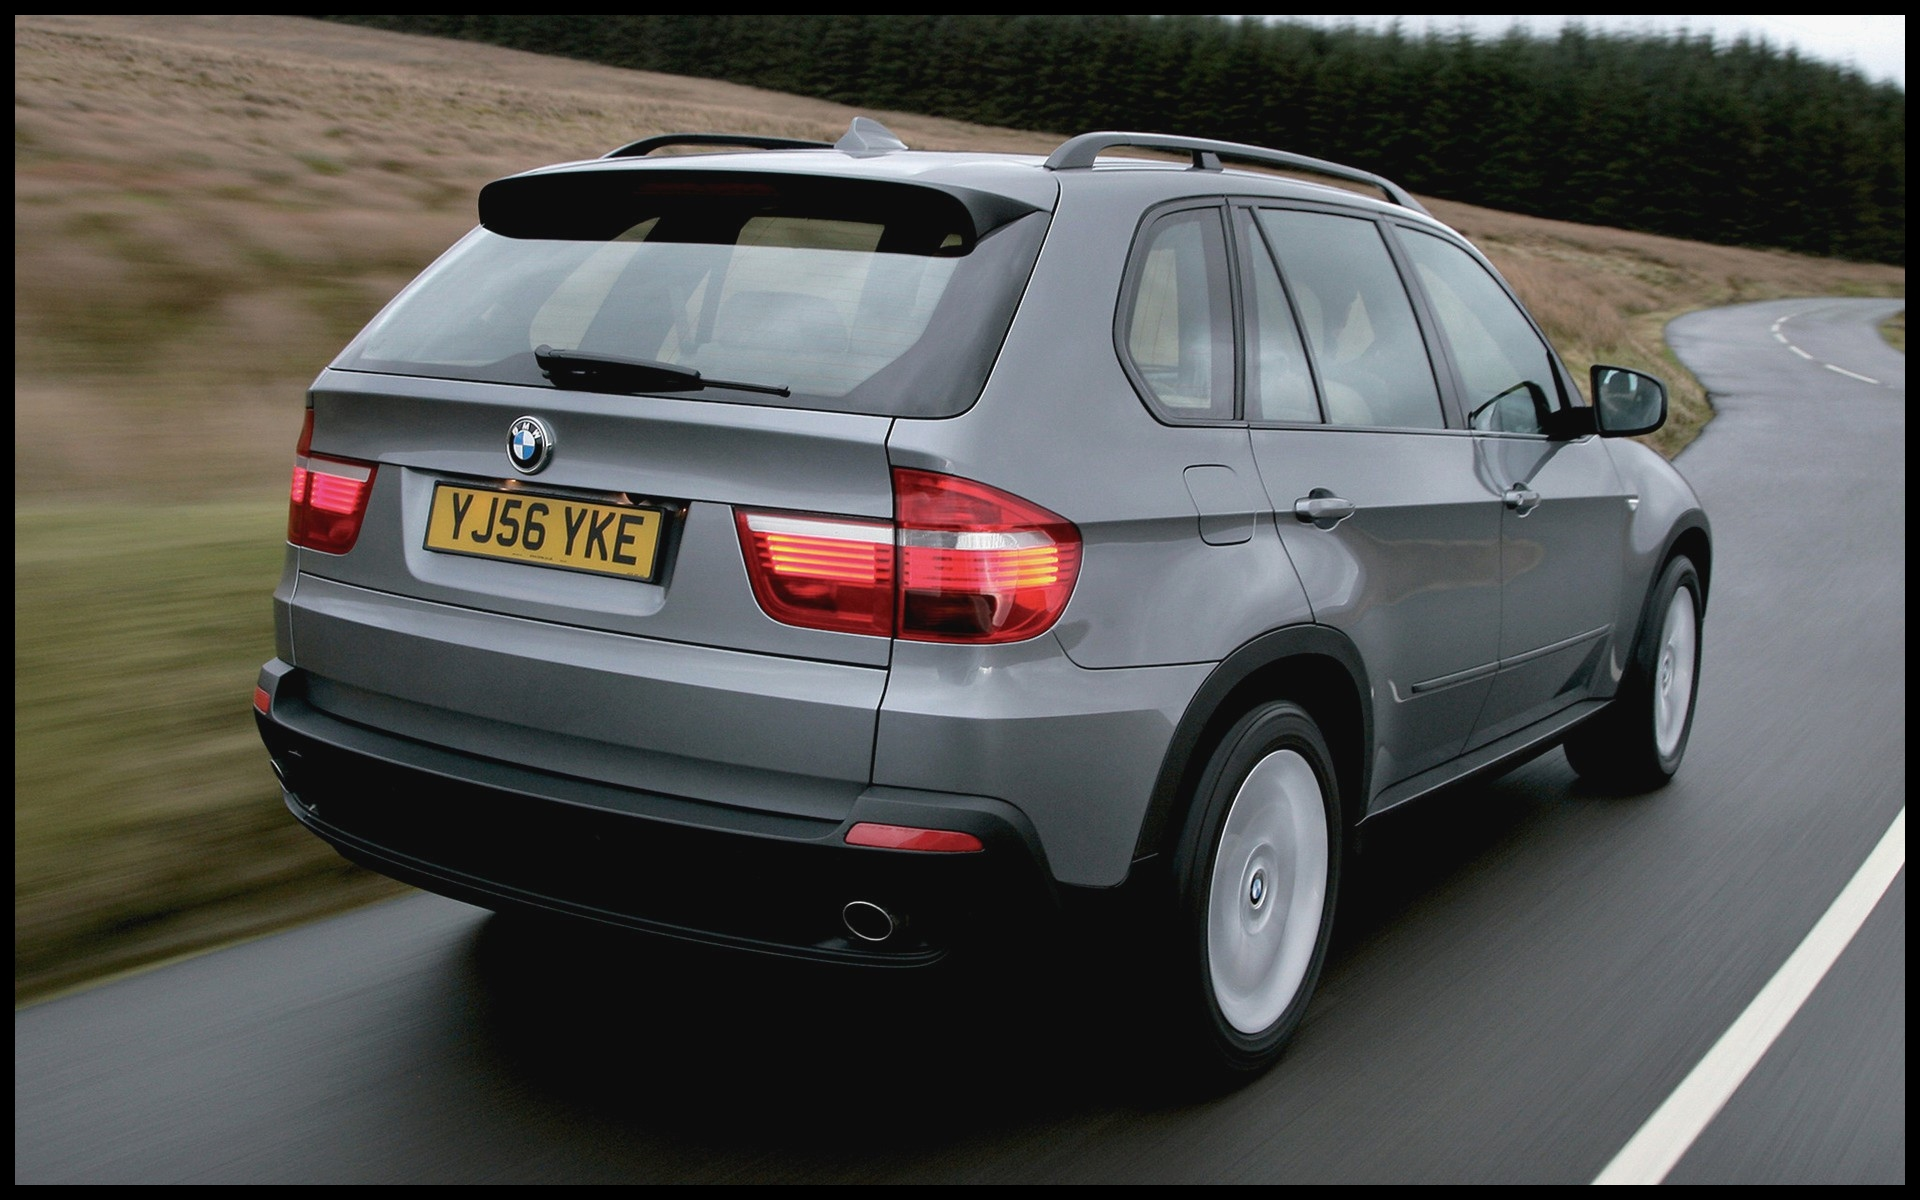 Bmw England Lovely Stylish Bmw X5 3 0d 2007 Uk Wallpapers And Hd Car Image Bmw X4 Wallpaper